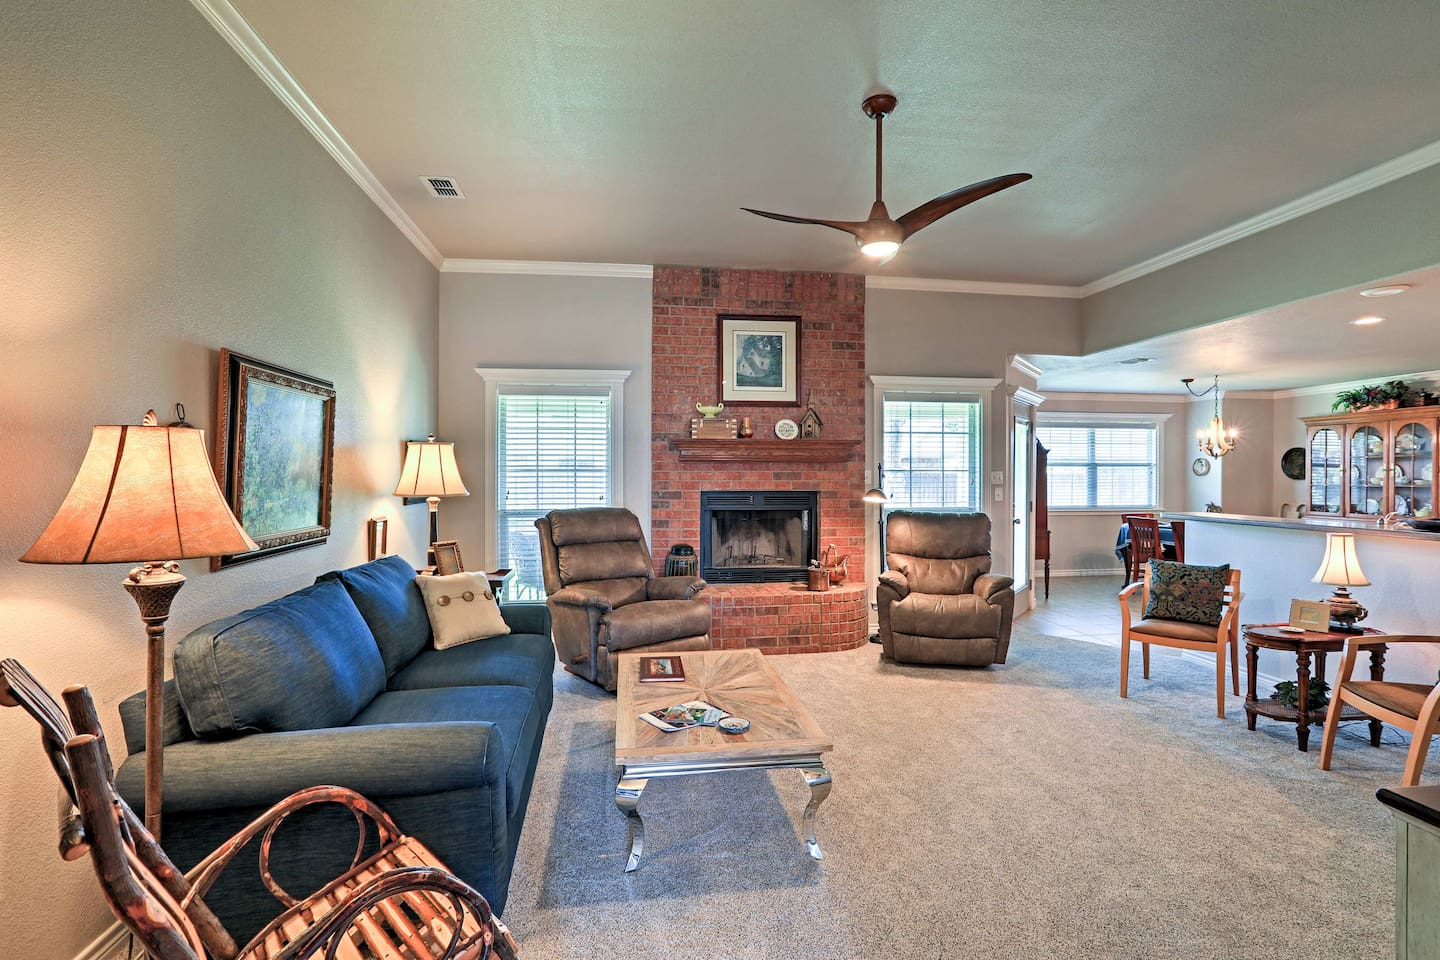 Make yourself at home in this 1,800-square-foot vacation rental house in Abilene